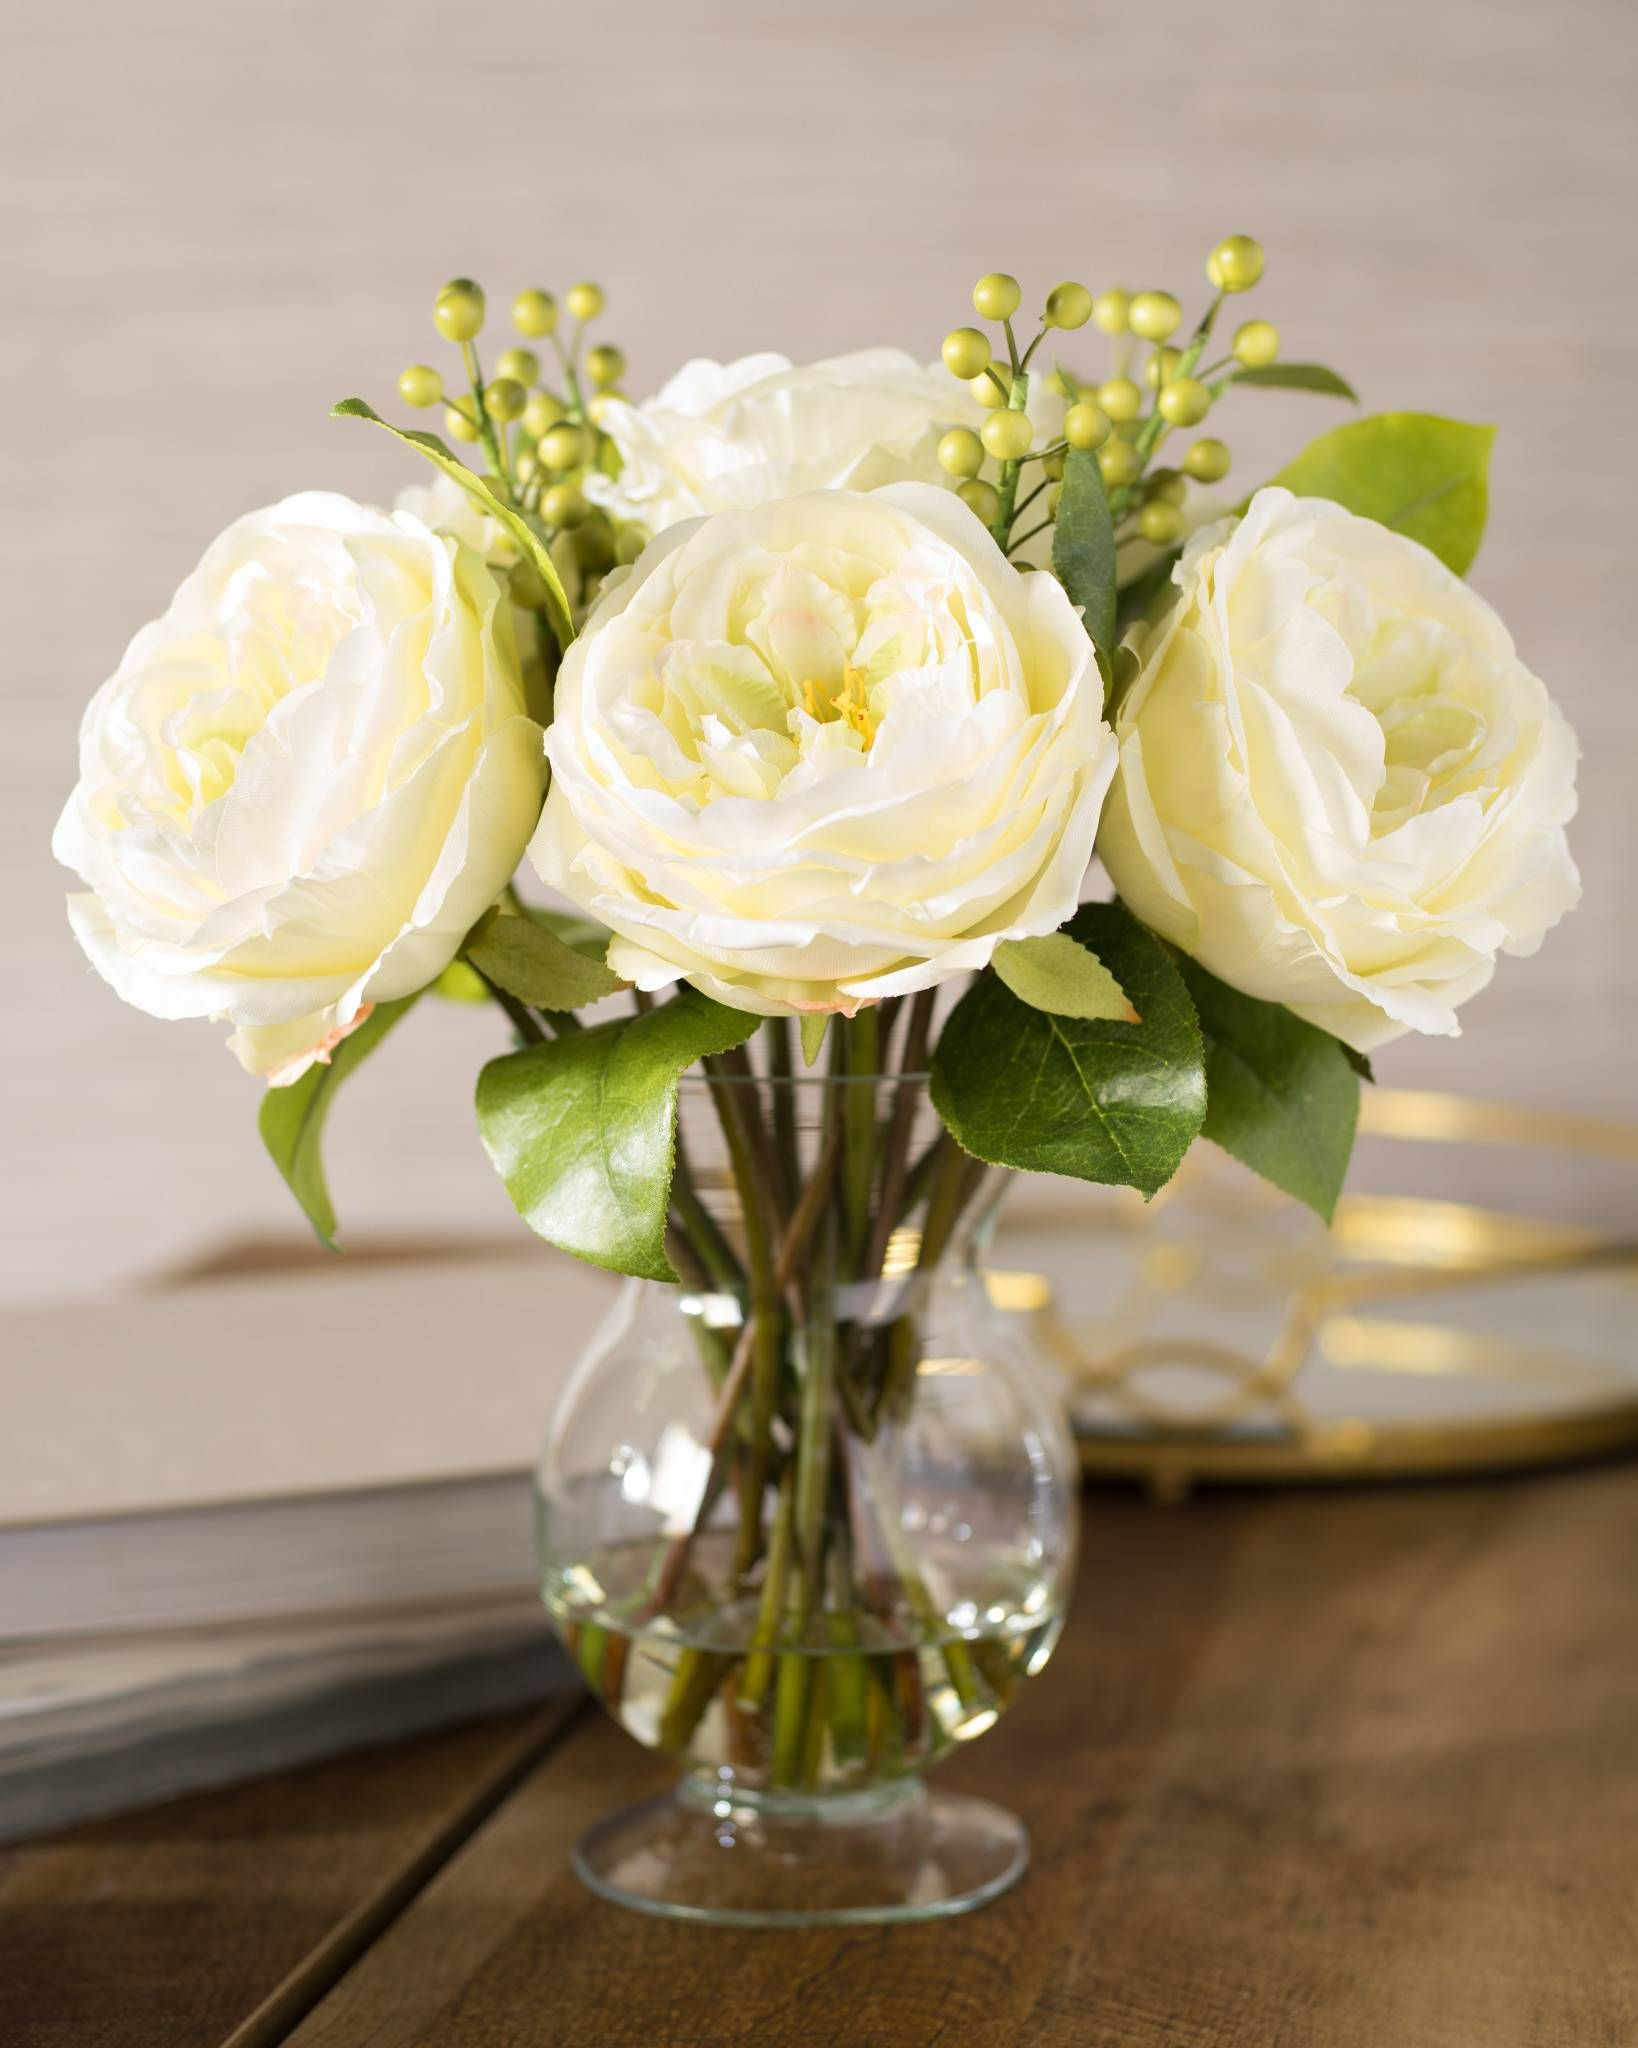 White Garden Rose Flower Arrangement Flower Arrangements White Flower Arrangements Artificial Flower Arrangements